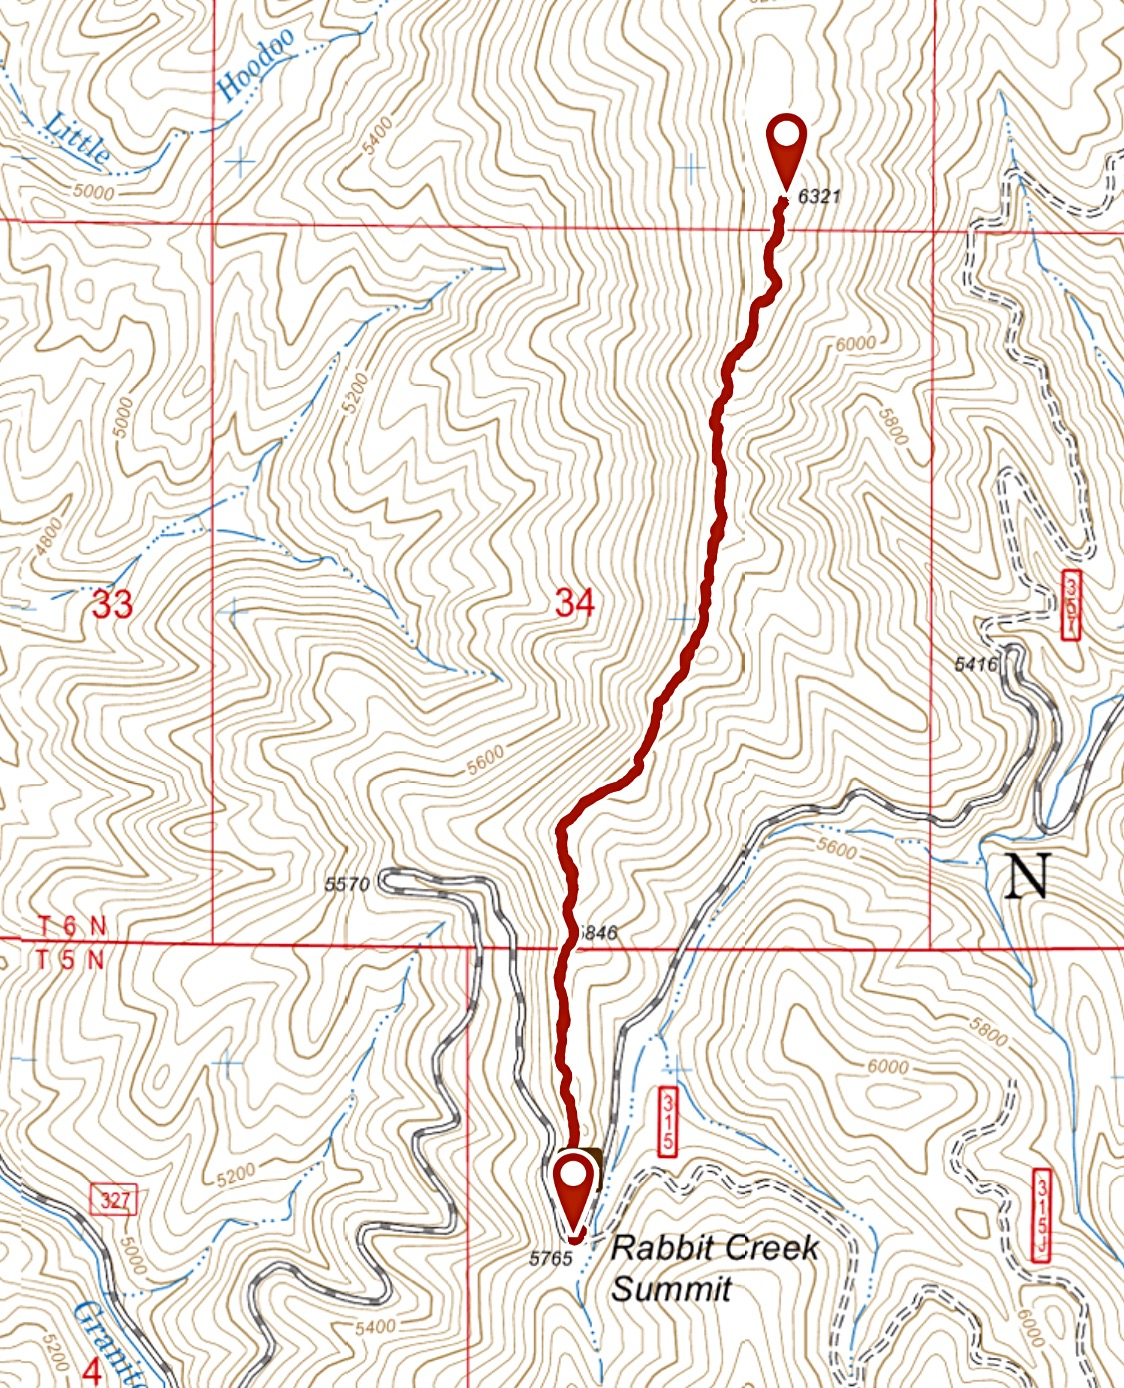 I followed Erik's route in 2018. My stats were 3.24 miles with 470 feet of elevation gain. TL